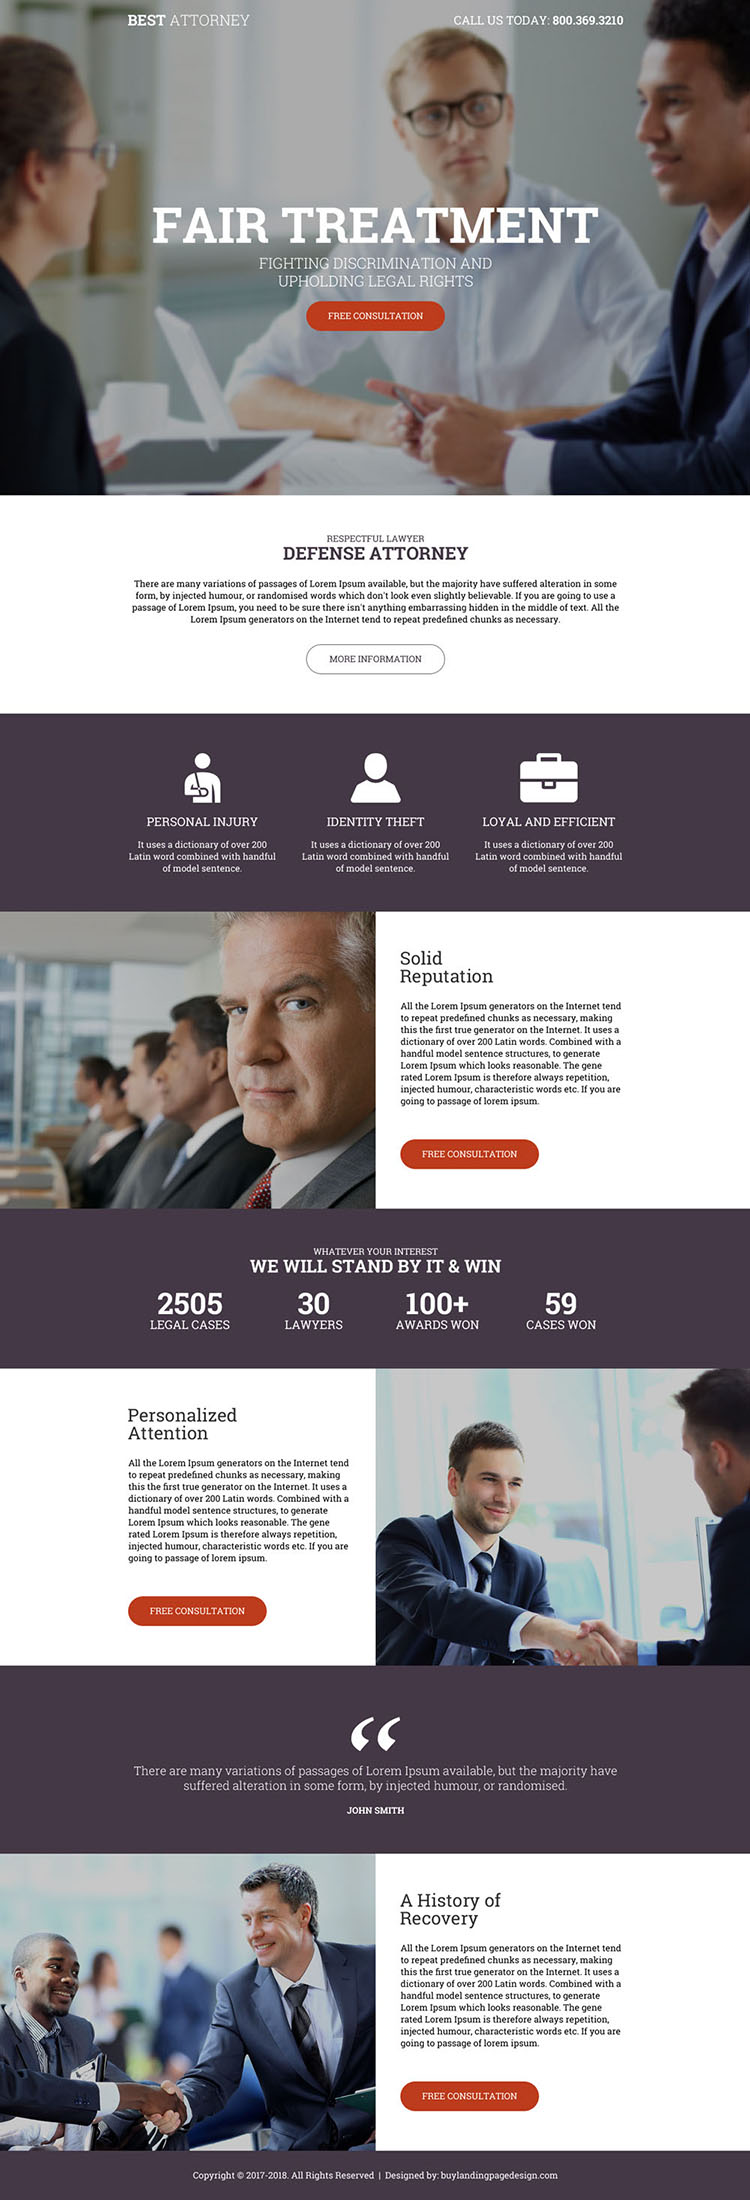 defense attorney free consultation providing landing page design